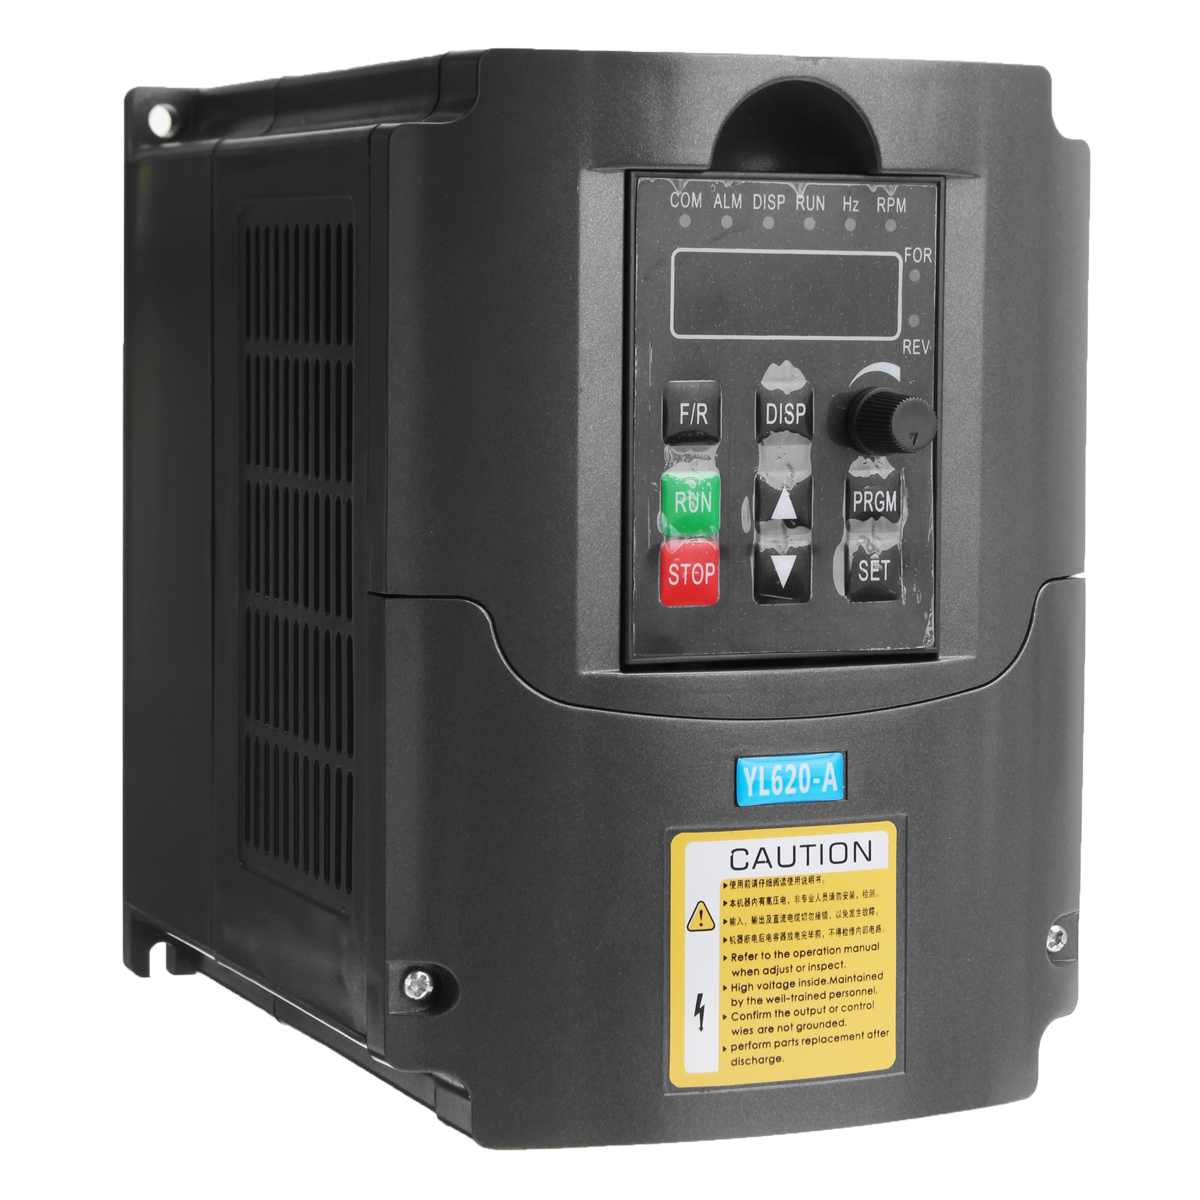 AC Variable Frequency Inverter 0.75kw 220V Converter 3 Phase Output 50-60Hz Single Phase Input Space Voltage Vector Modulation 110v 2 2kw ac variable frequency inverter converter 3 phase output single phase input space voltage vector modulation